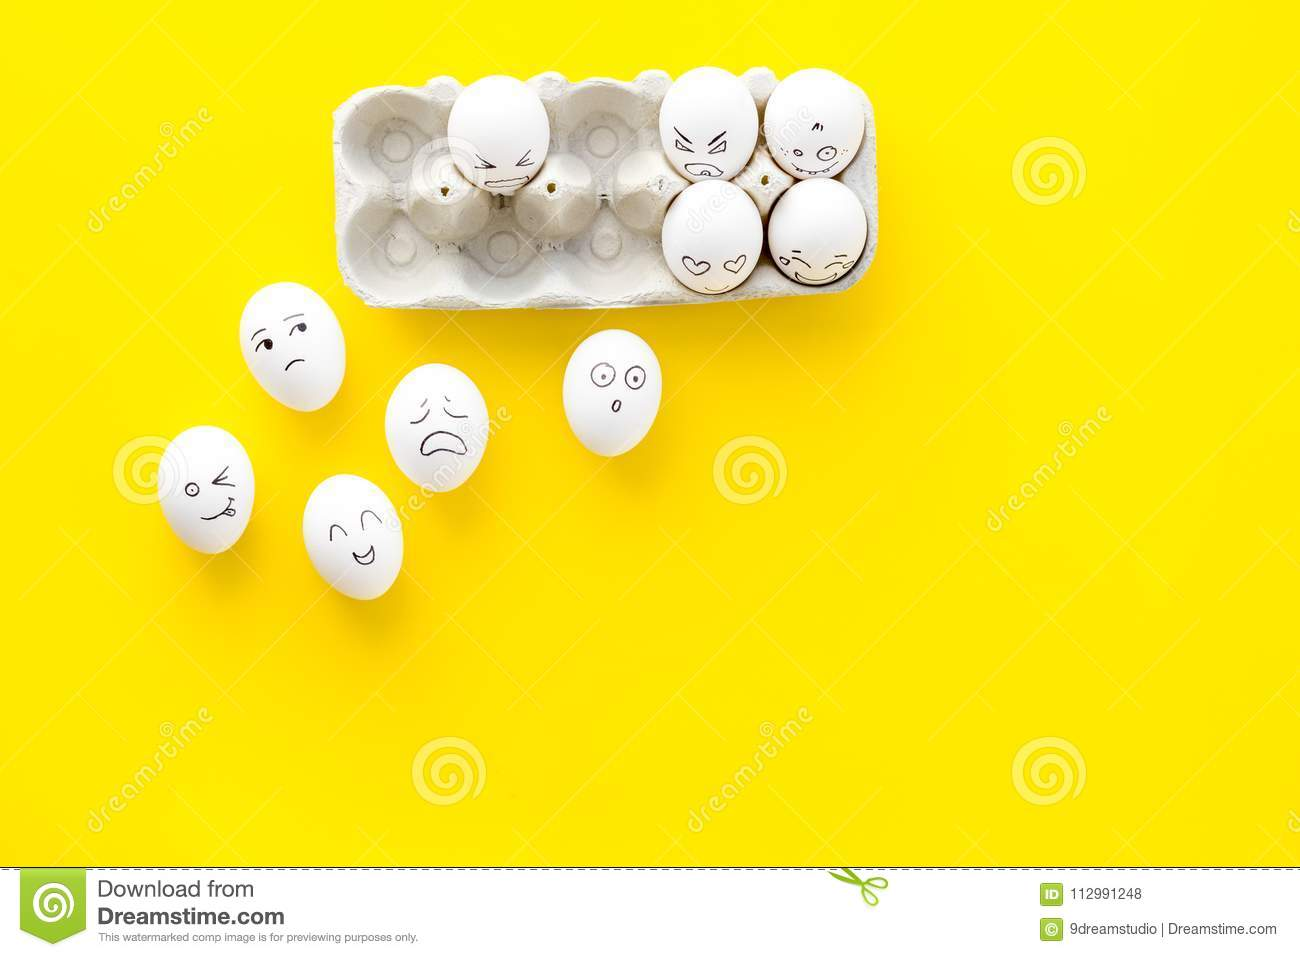 Emotions in communication at social media. Faces drawn on eggs. Happy, smile, sad, angry, in love, saticfied, laughing